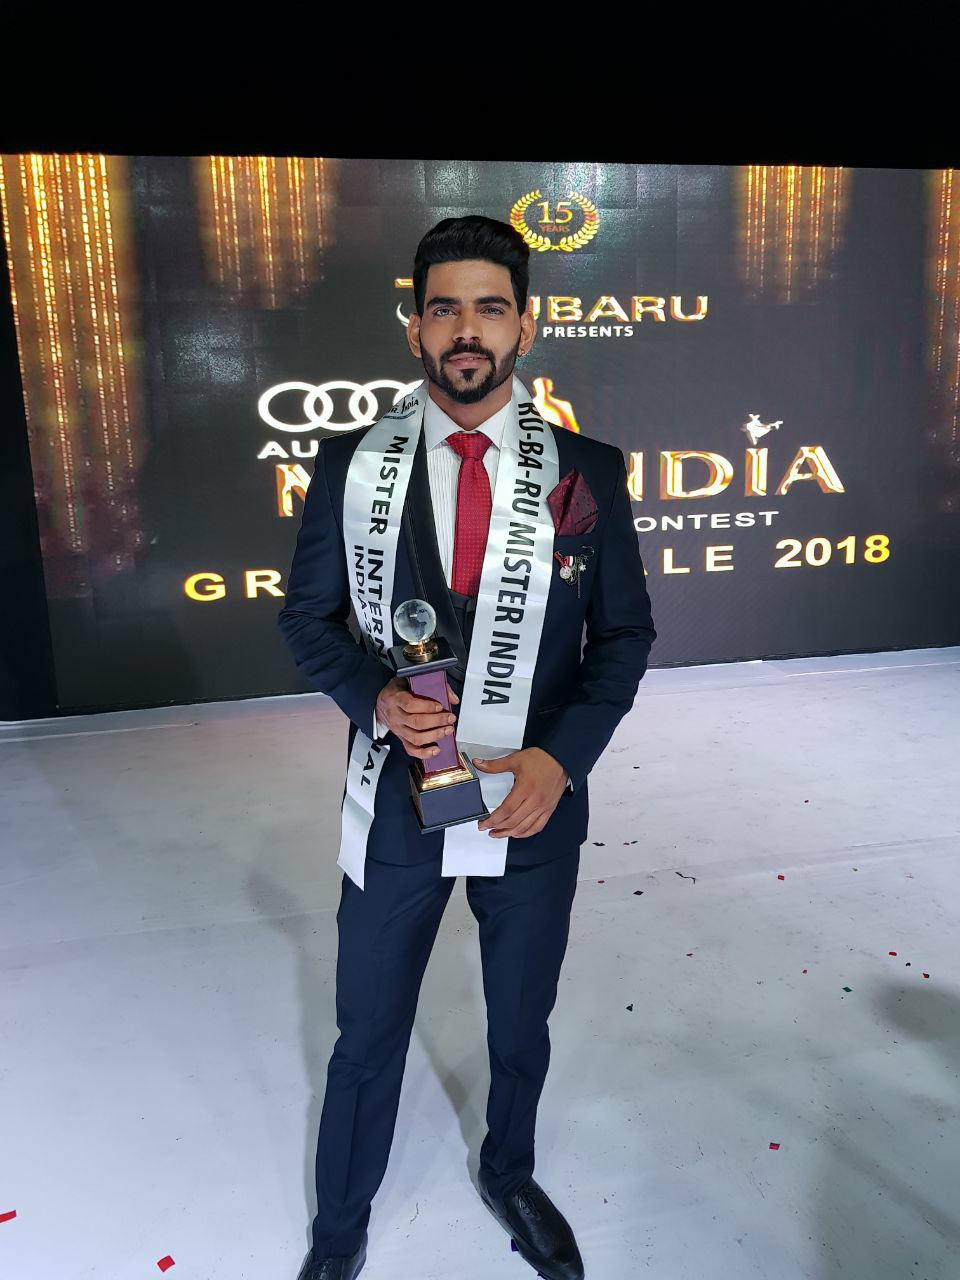 Balaji is the winner of 15th Rubaru Mr India pageant. He is the first model from Tamil Nadu to win the Mr India contest.